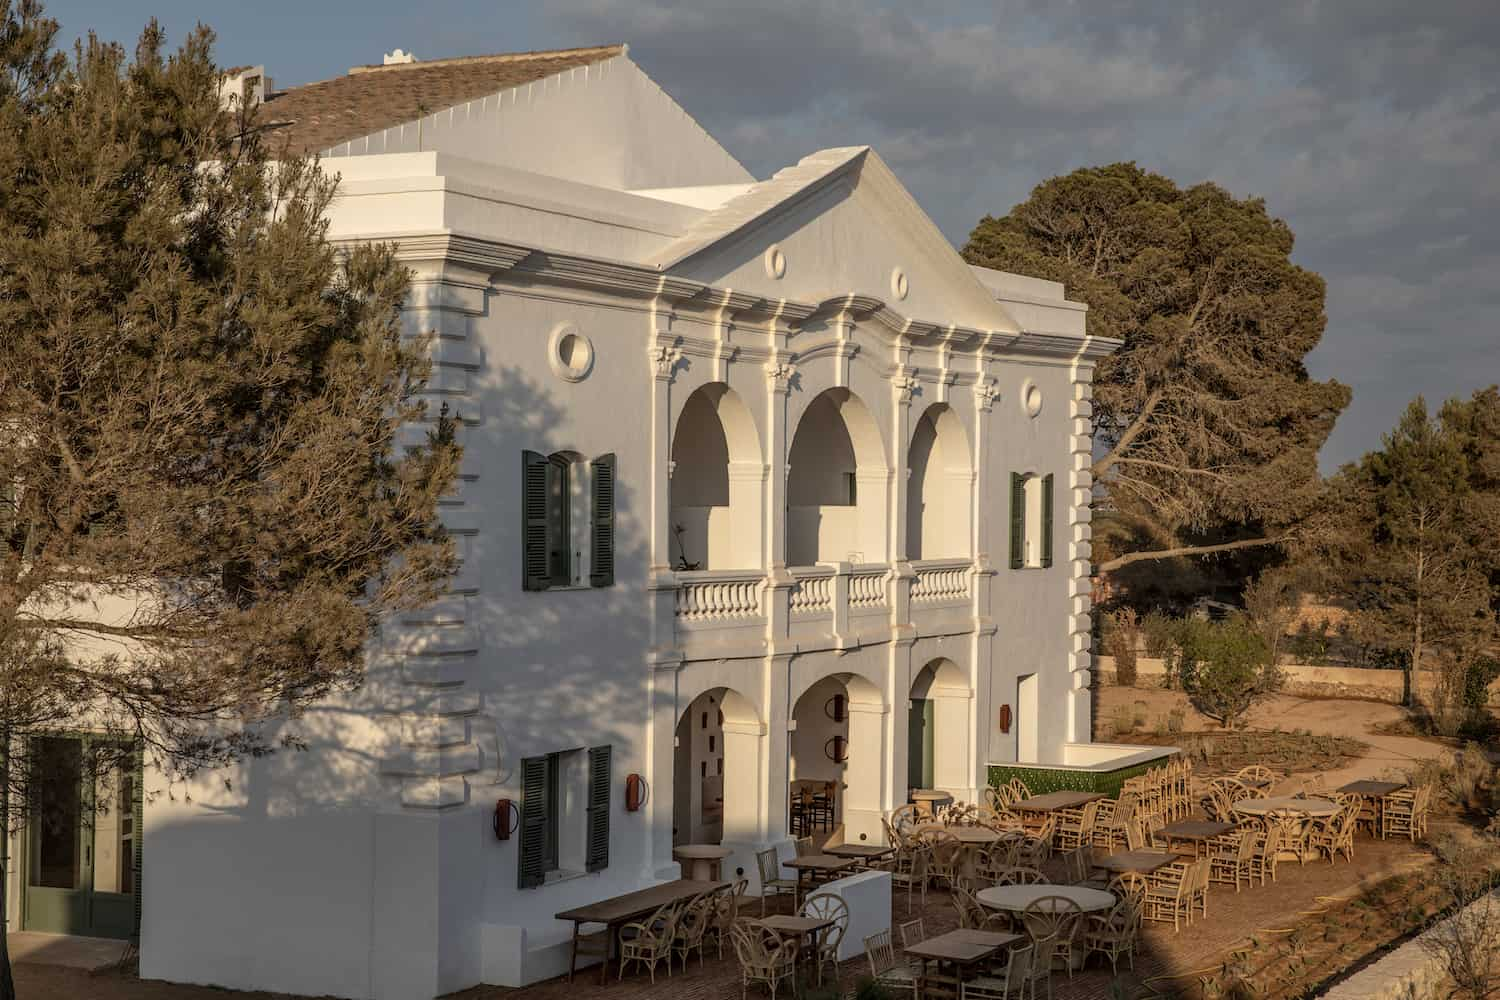 Experimental Hotel in Menorca surrounded by trees